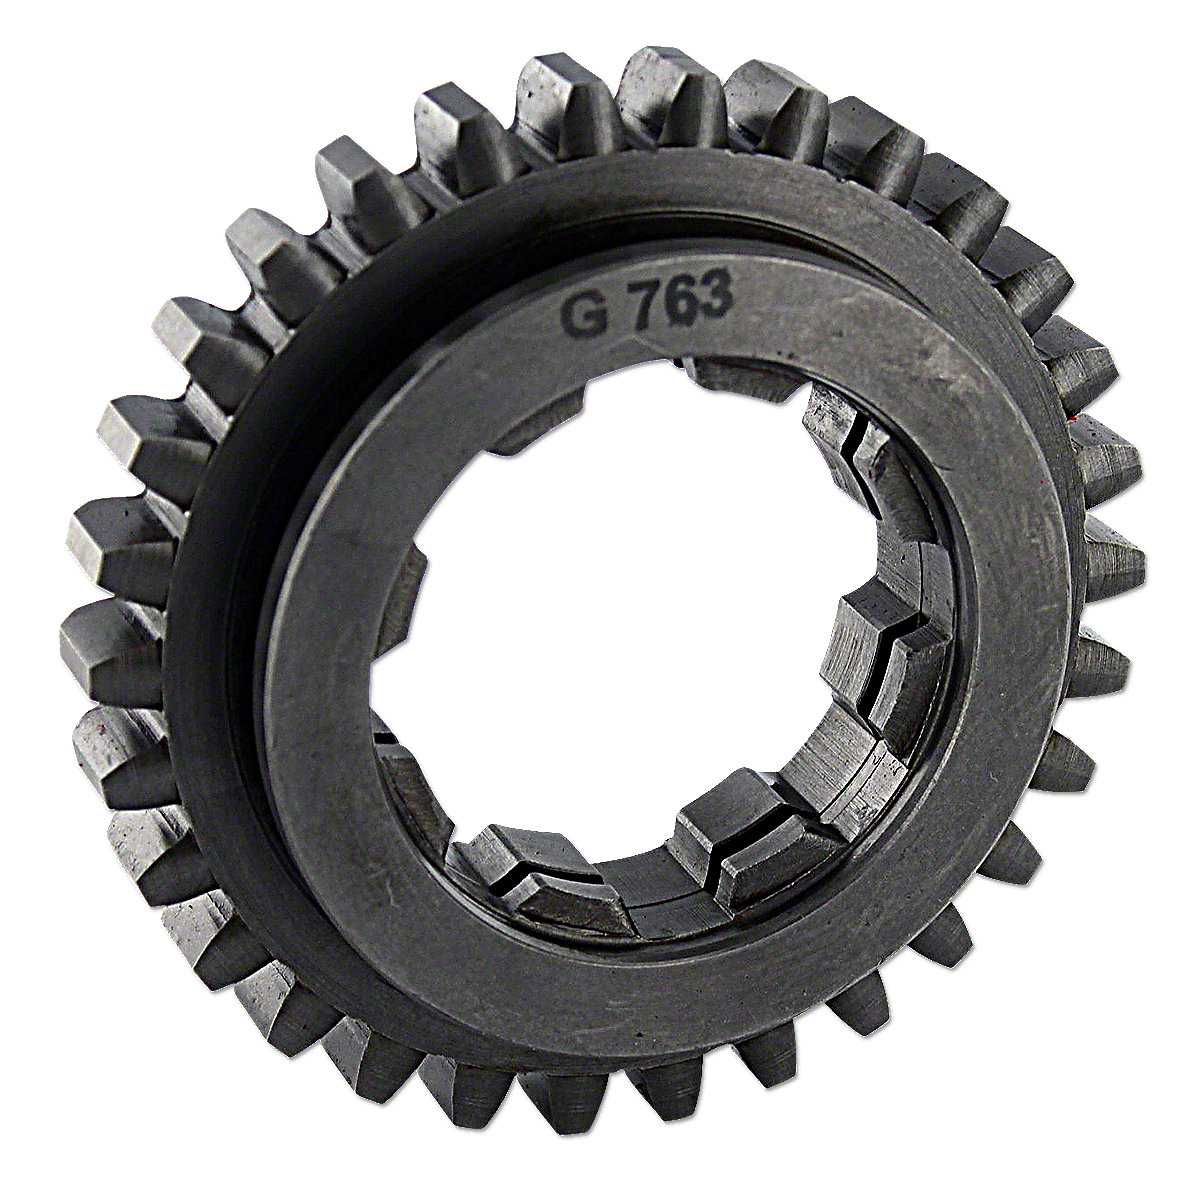 Pinion Shaft Reverse Gear For Allis Chalmers: CA, D10, D12, D14, D15.